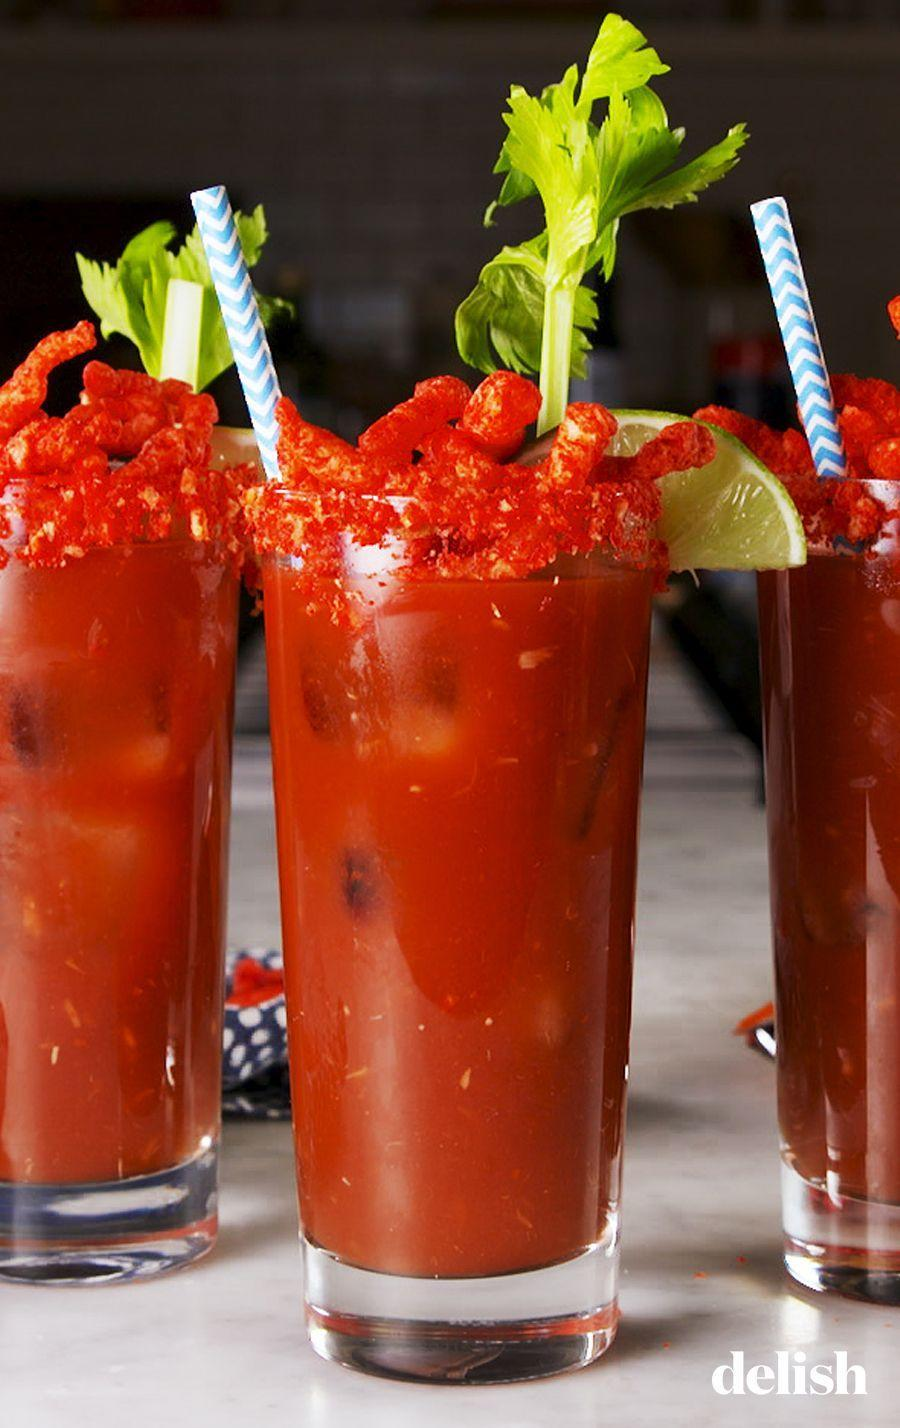 """<p>A Cheetos-inspired Bloody Mary? We're sold. </p><p>Get the recipe from <a href=""""https://www.delish.com/cooking/recipe-ideas/a26079810/flamin-hot-bloody-marys-recipe/"""" rel=""""nofollow noopener"""" target=""""_blank"""" data-ylk=""""slk:Delish"""" class=""""link rapid-noclick-resp"""">Delish</a>.</p>"""